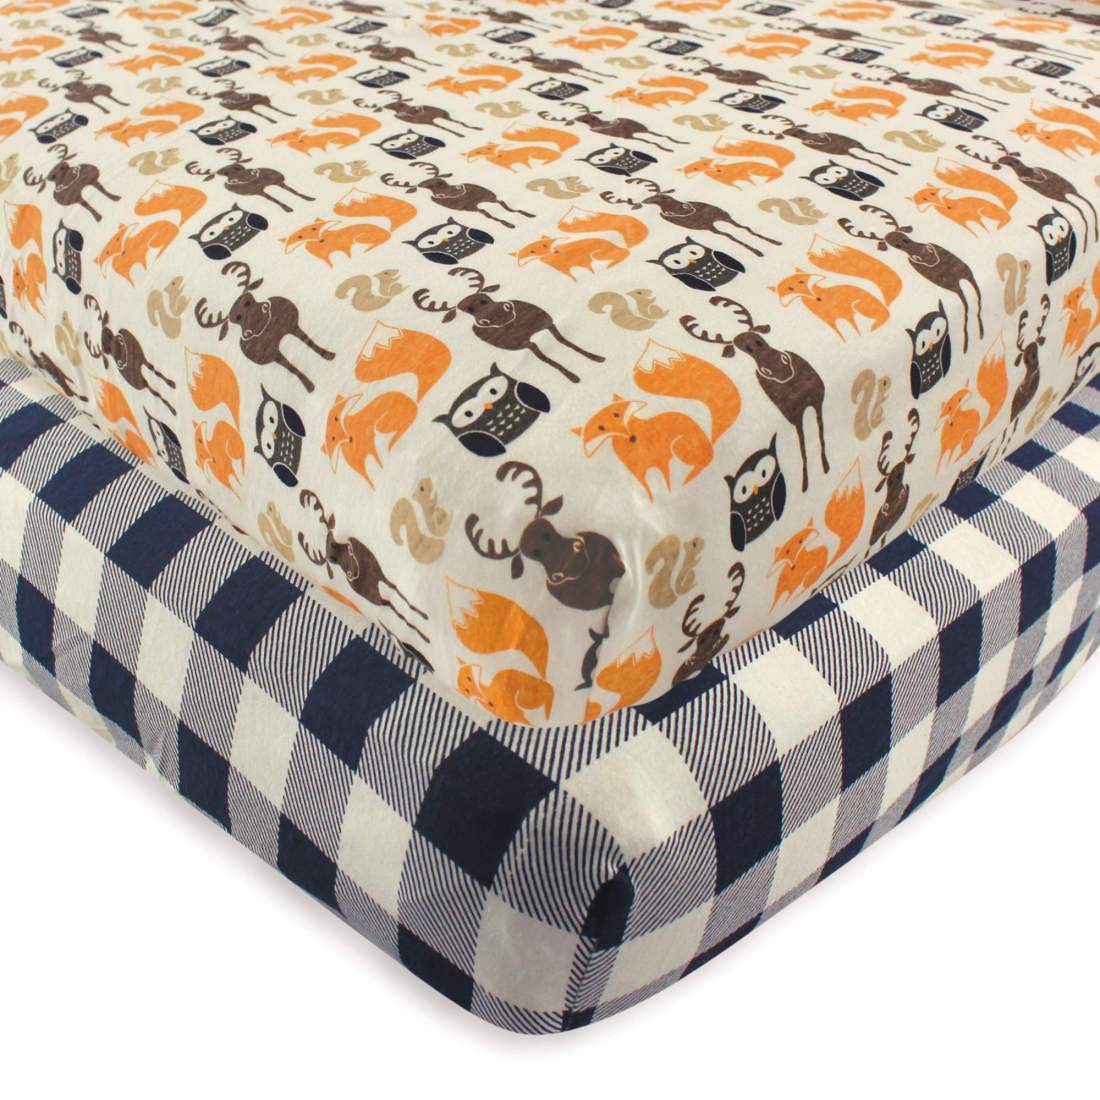 Hudson Baby Boy and Girl Fitted Crib Sheet, 2-Pack - Forest